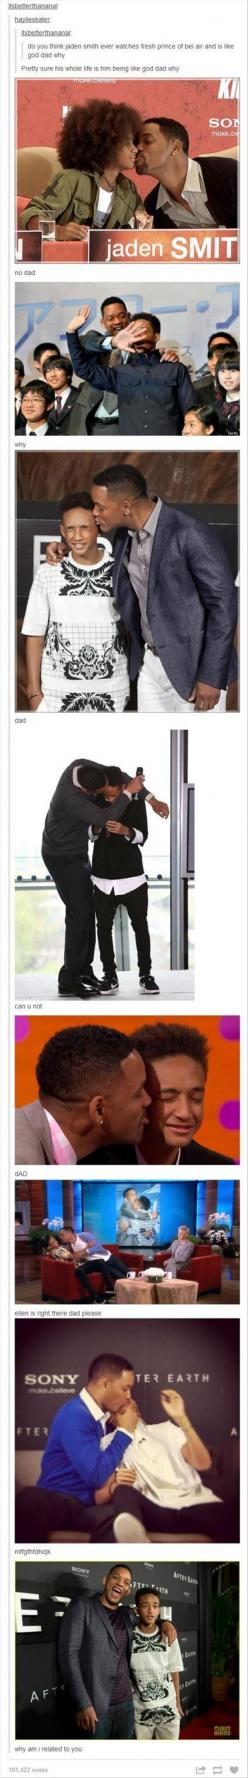 Will Smith needs to win father of the year award  And Jaden needs to appreciate how much his dad loves him. But this is funny!: Jaden Smith, Willsmith, Dad, Giggle, Poor Jaden, Funny Stuff, Will Smith, Kid